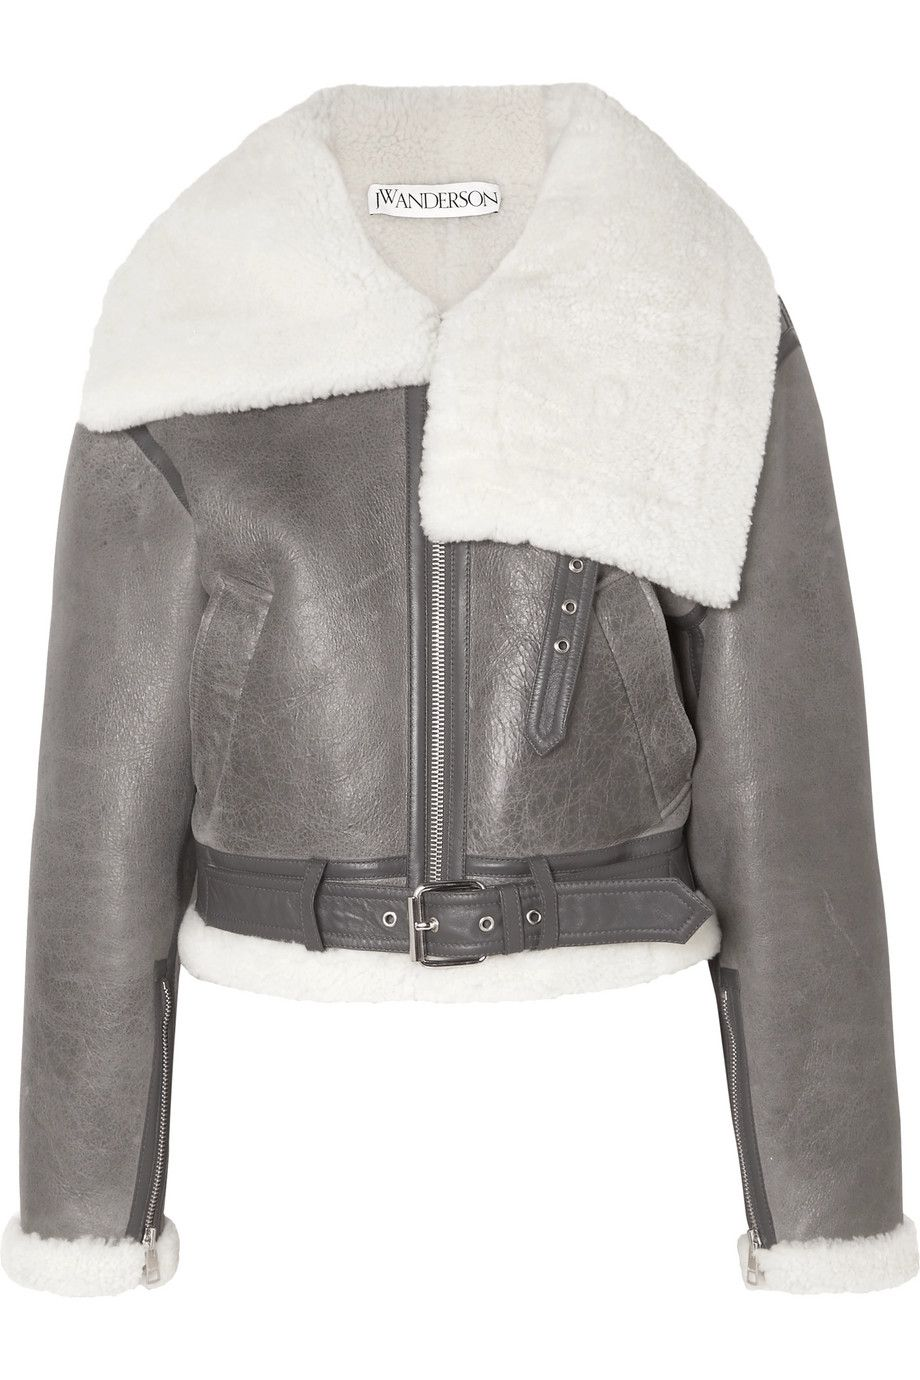 w-anderson-cropped-shearling-jacket